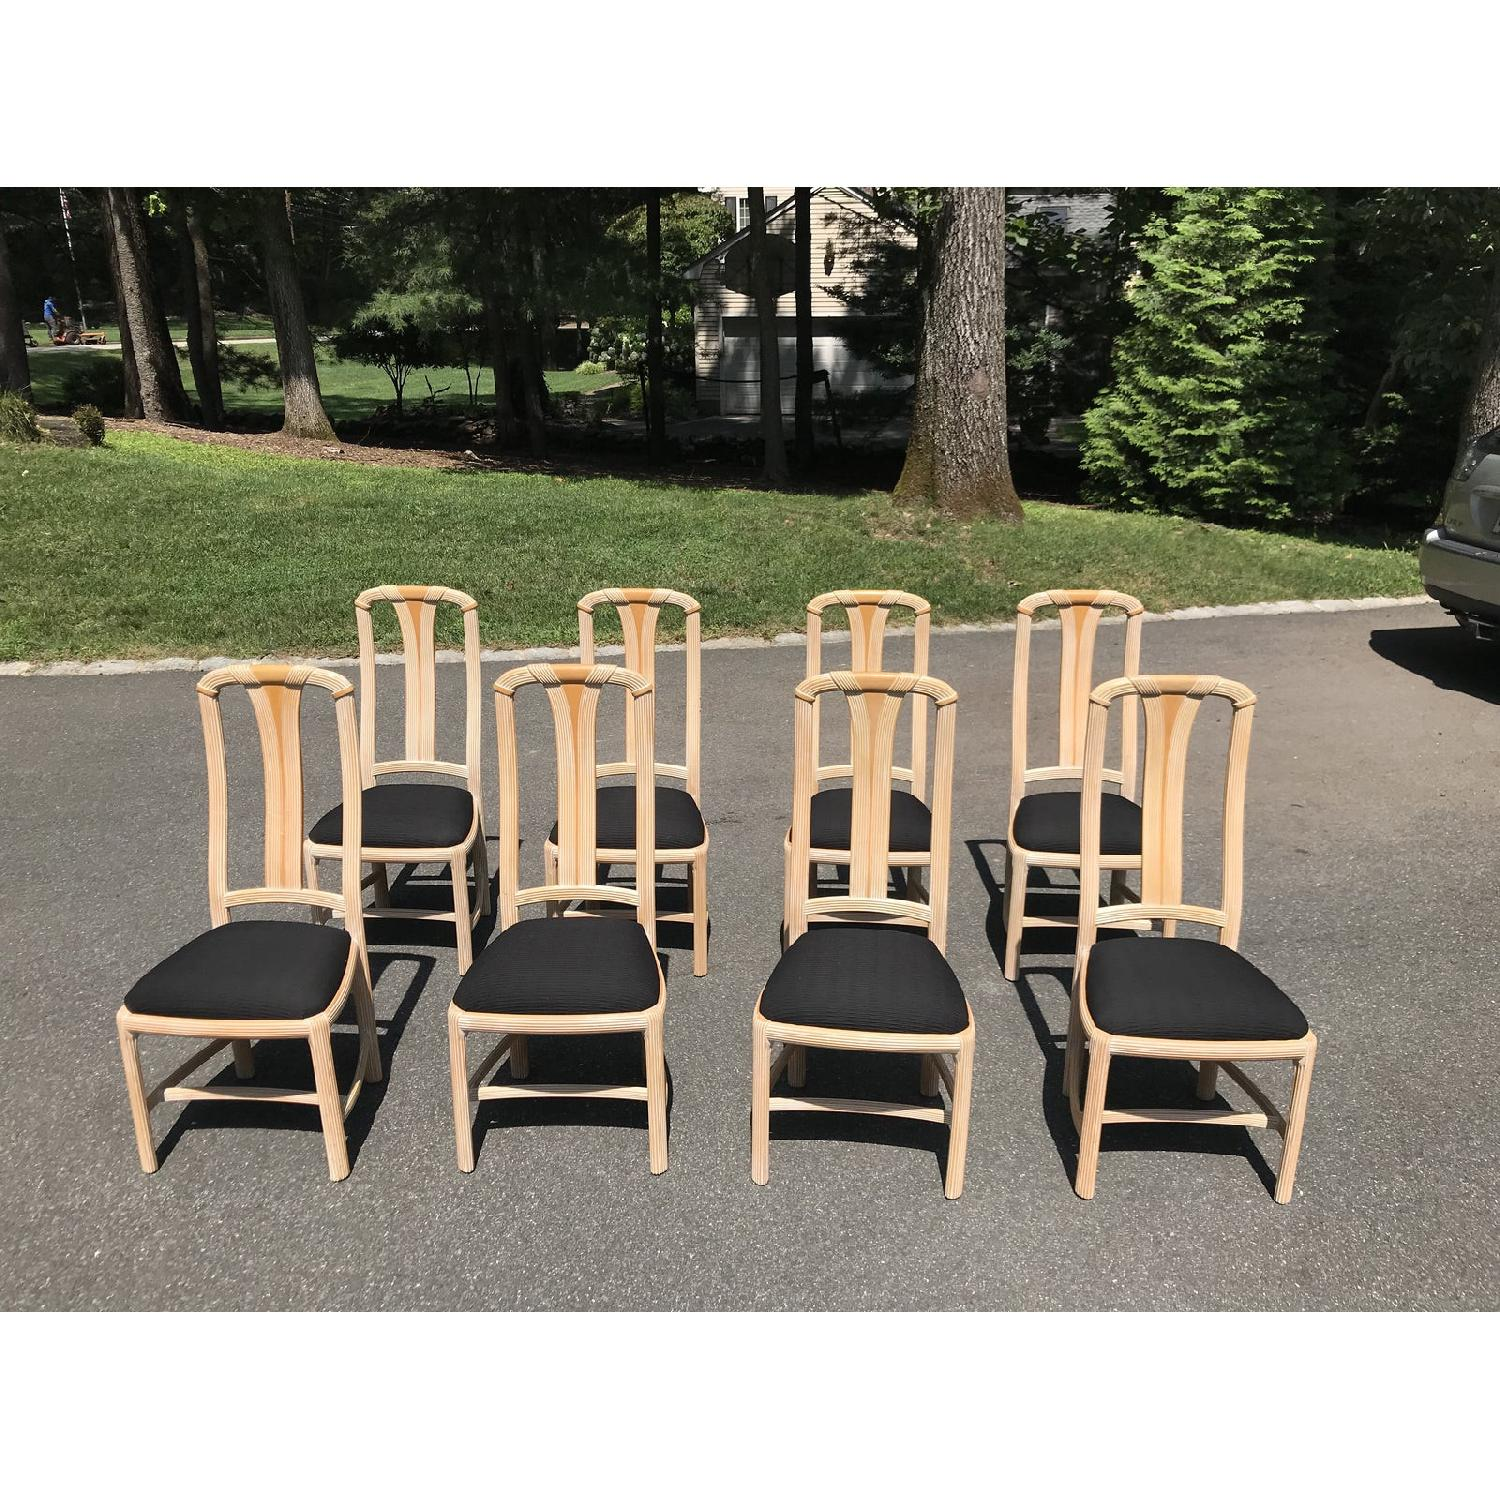 1970s Chic Cerused Oak Dining Chairs - image-3